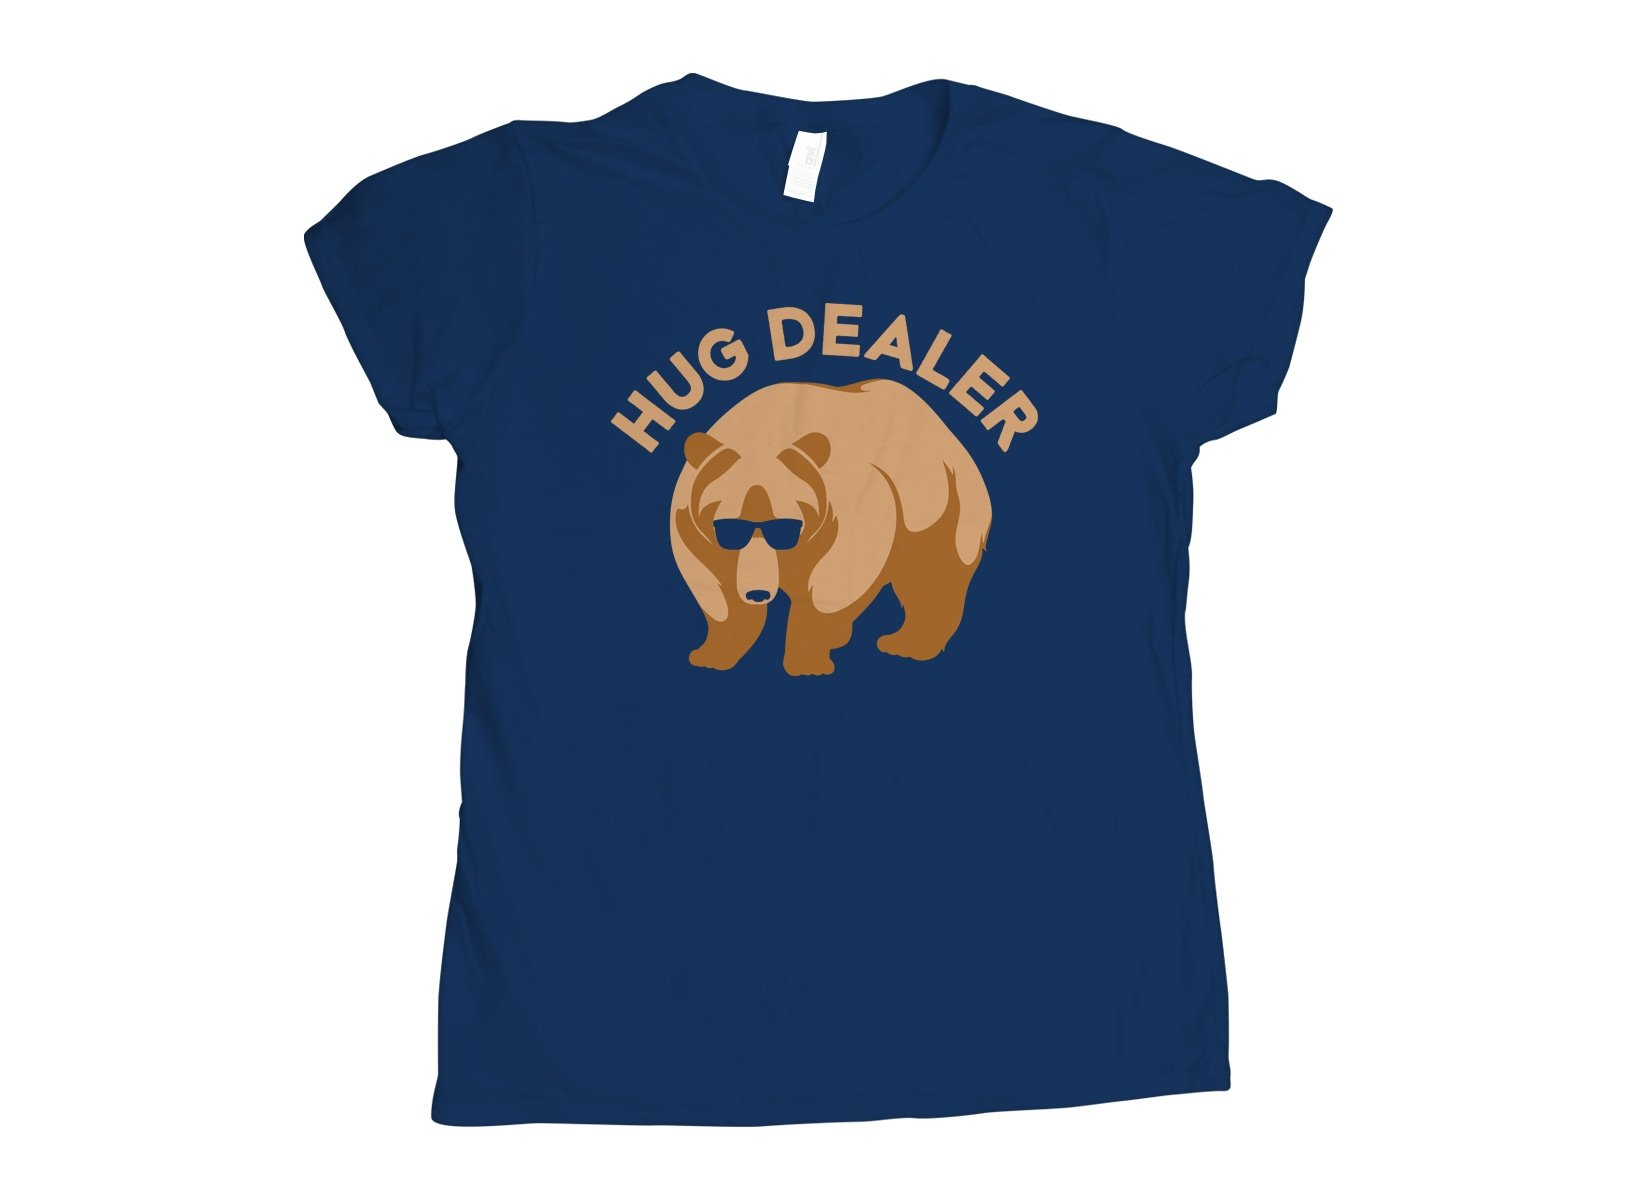 Hug Dealer on Womens T-Shirt